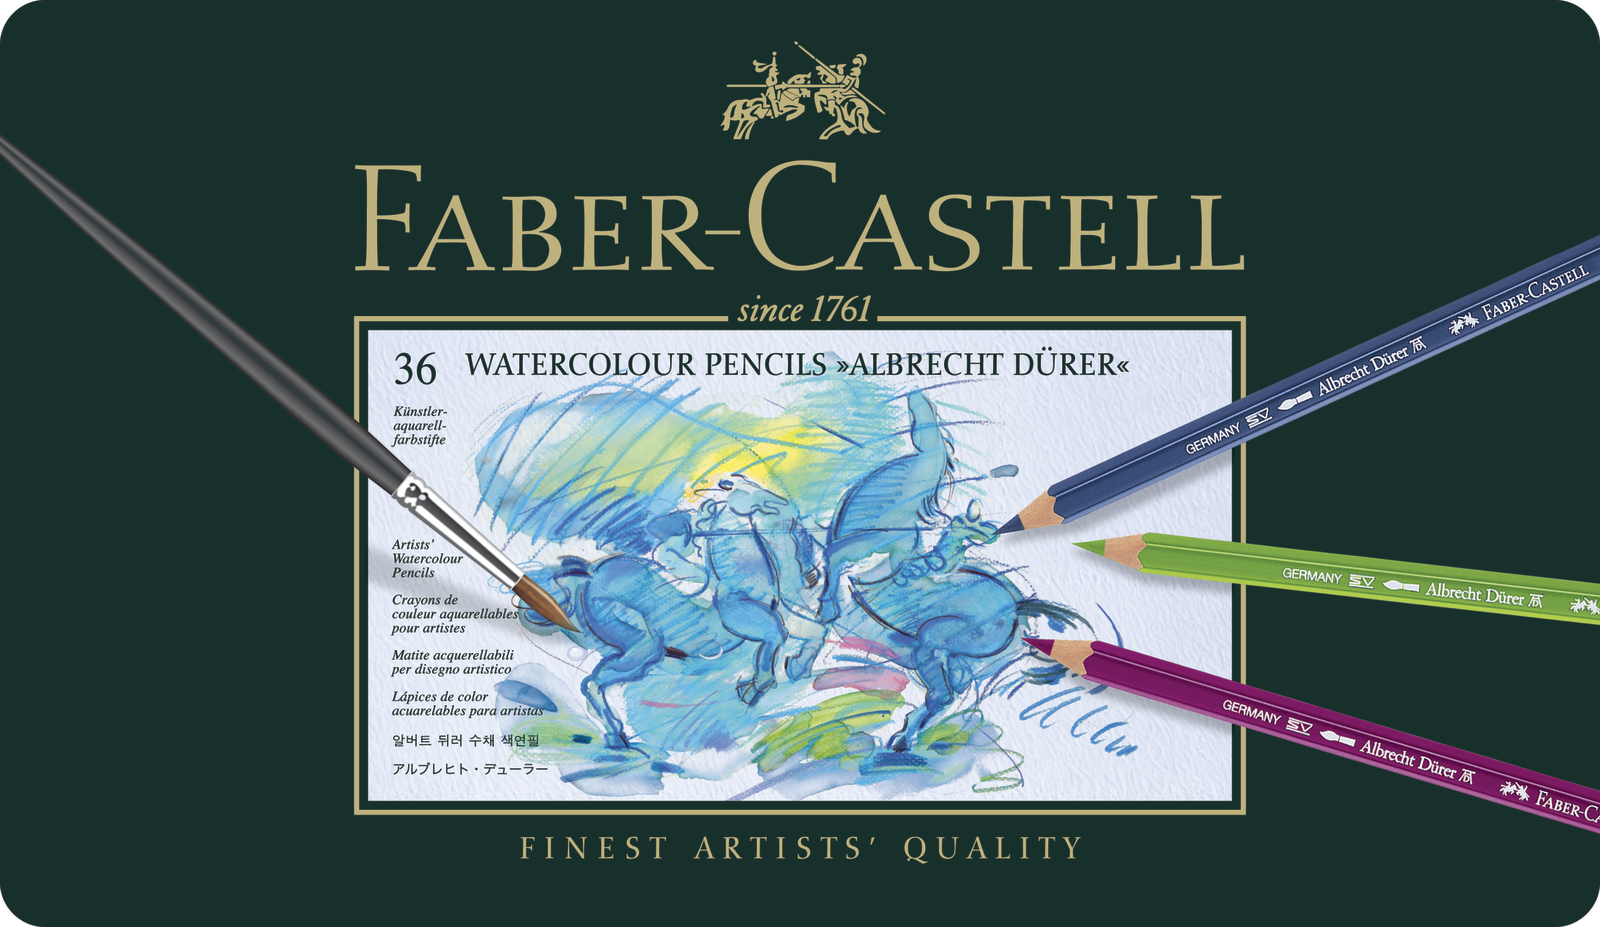 Faber-Castell: Albrecht Durer Pencil (Tin of 36) image